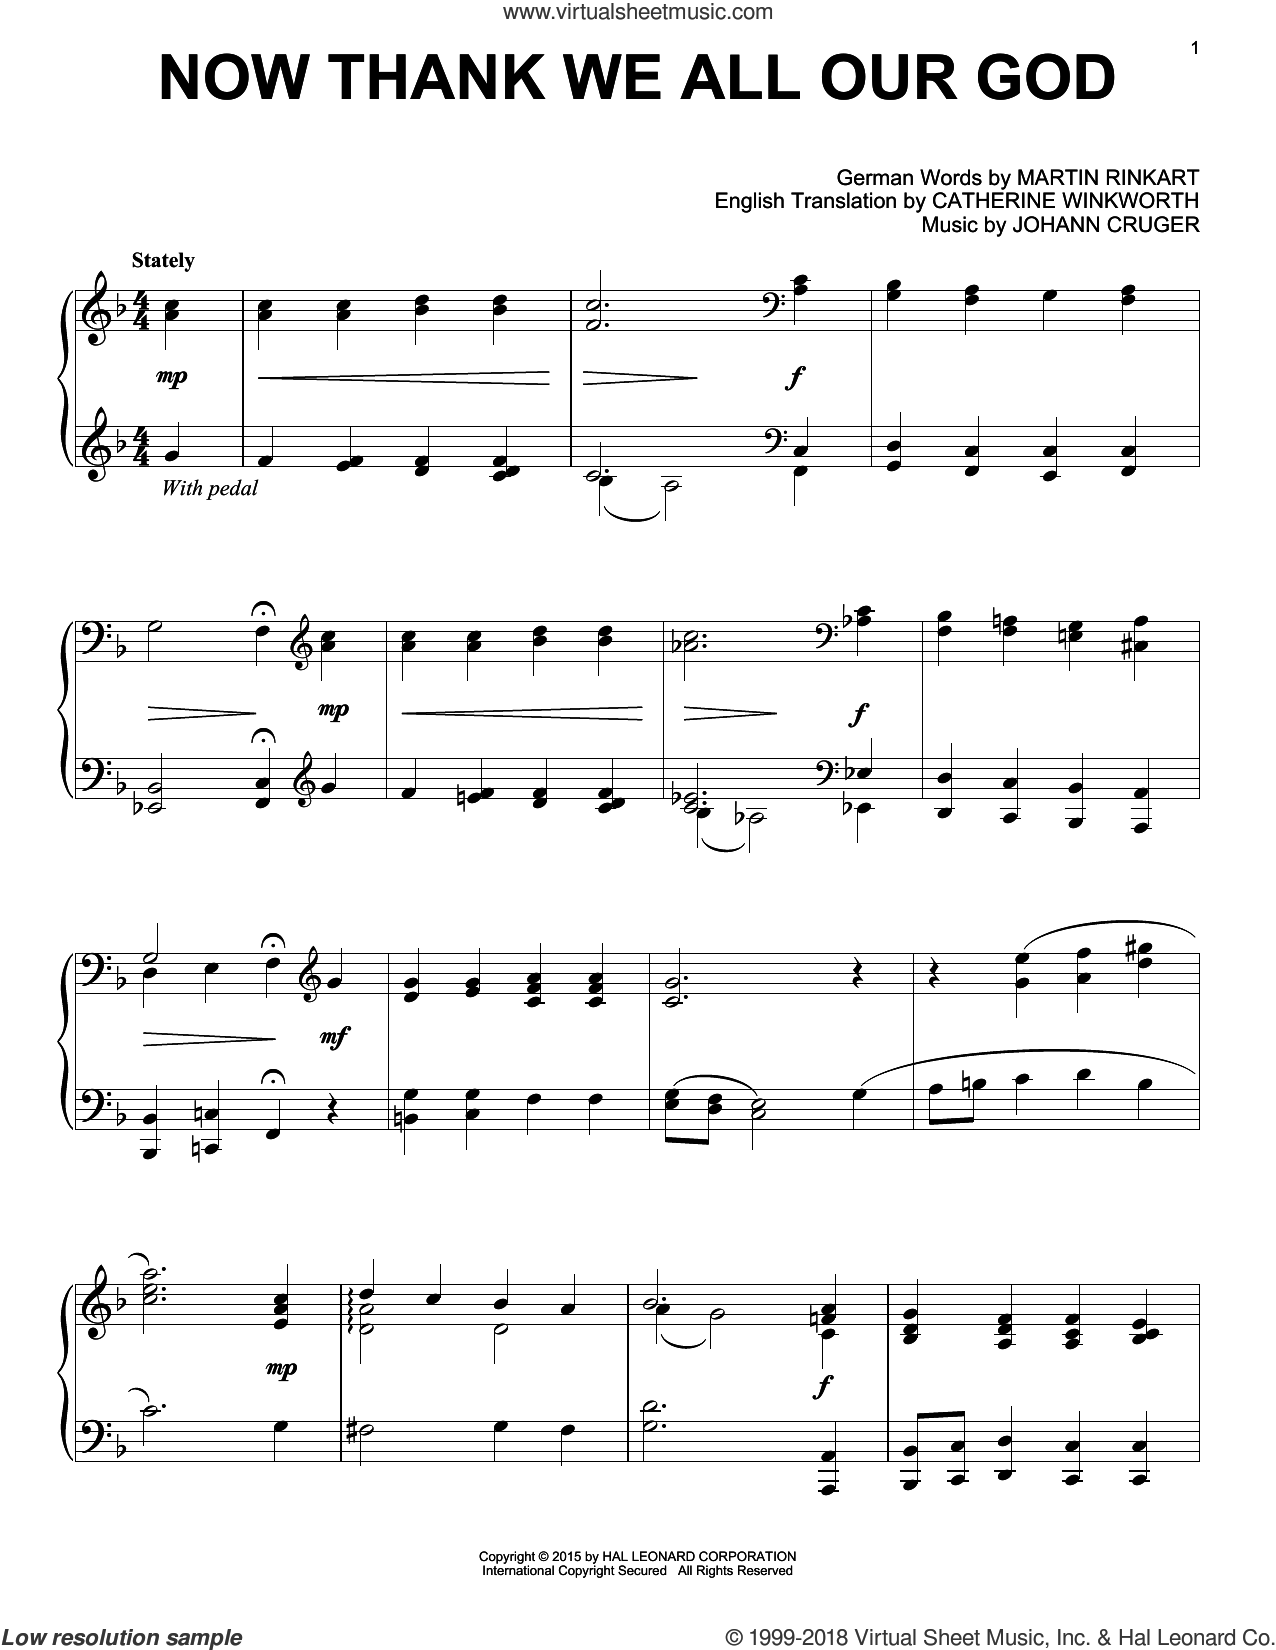 Now Thank We All Our God sheet music for piano solo by Martin Rinkart, Catherine Winkworth and Johann Cruger and Johann Cruger, intermediate skill level